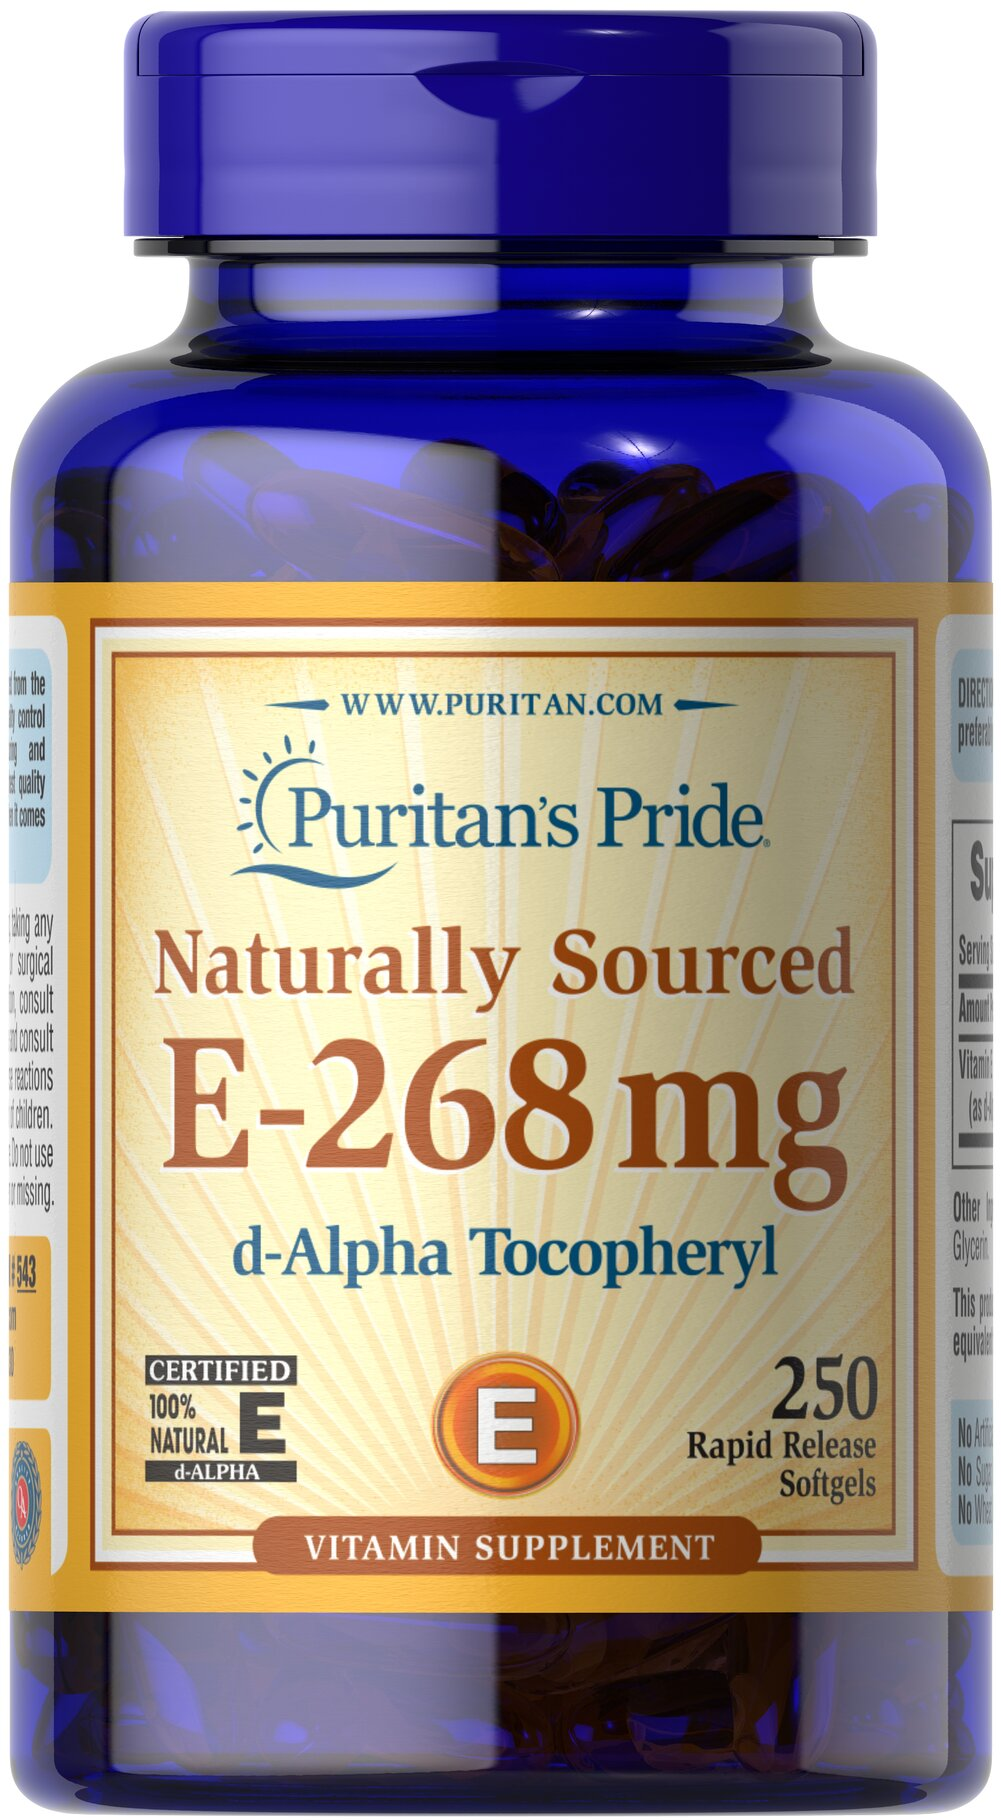 Vitamin E-400 iu 100% Natural <p><strong></strong>Vitamin E is a potent antioxidant that helps fight free radicals.** Oxidative stress caused by free radicals may contribute to the premature aging of cells. Vitamin E also supports immune function and helps support cardiovascular health.** Vitamin E also plays a role in maintaining healthy blood vessels.** Some people, including those on low-fat diets, may not be meeting the recommended daily intake for Vitamin E. Our Vitamin E